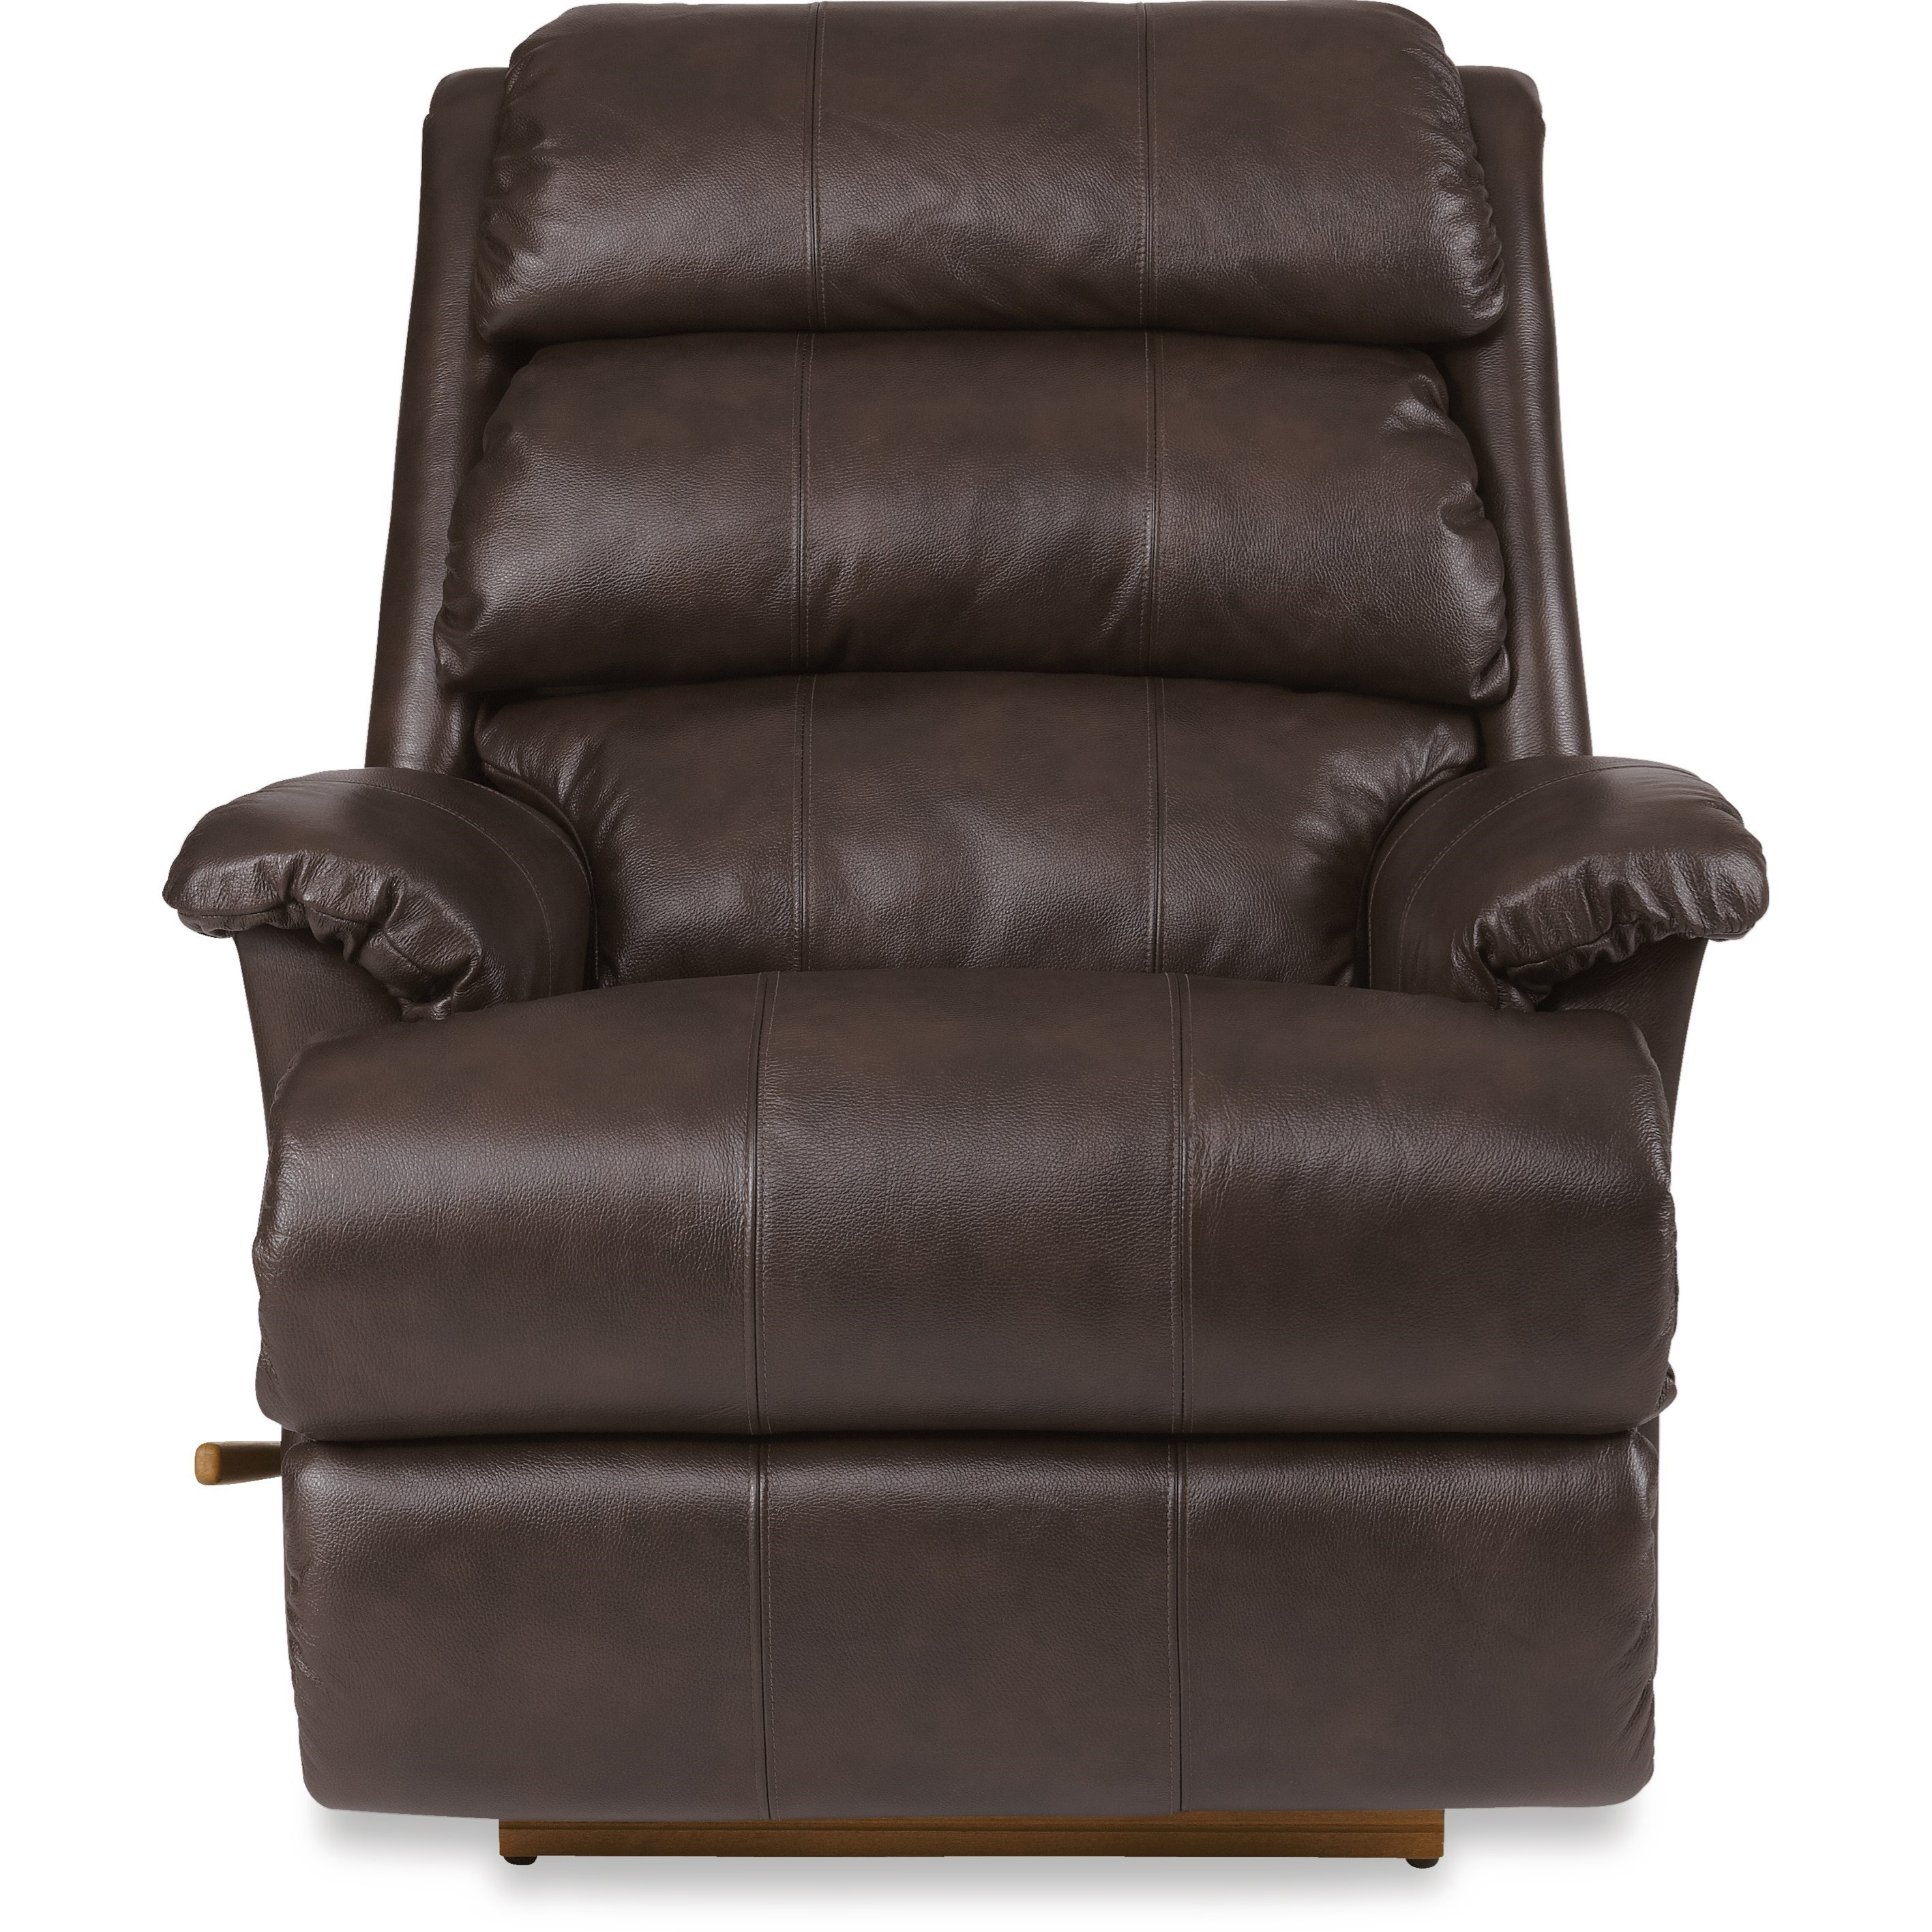 Astor Wall Recliner by La-Z-Boy at SuperStore